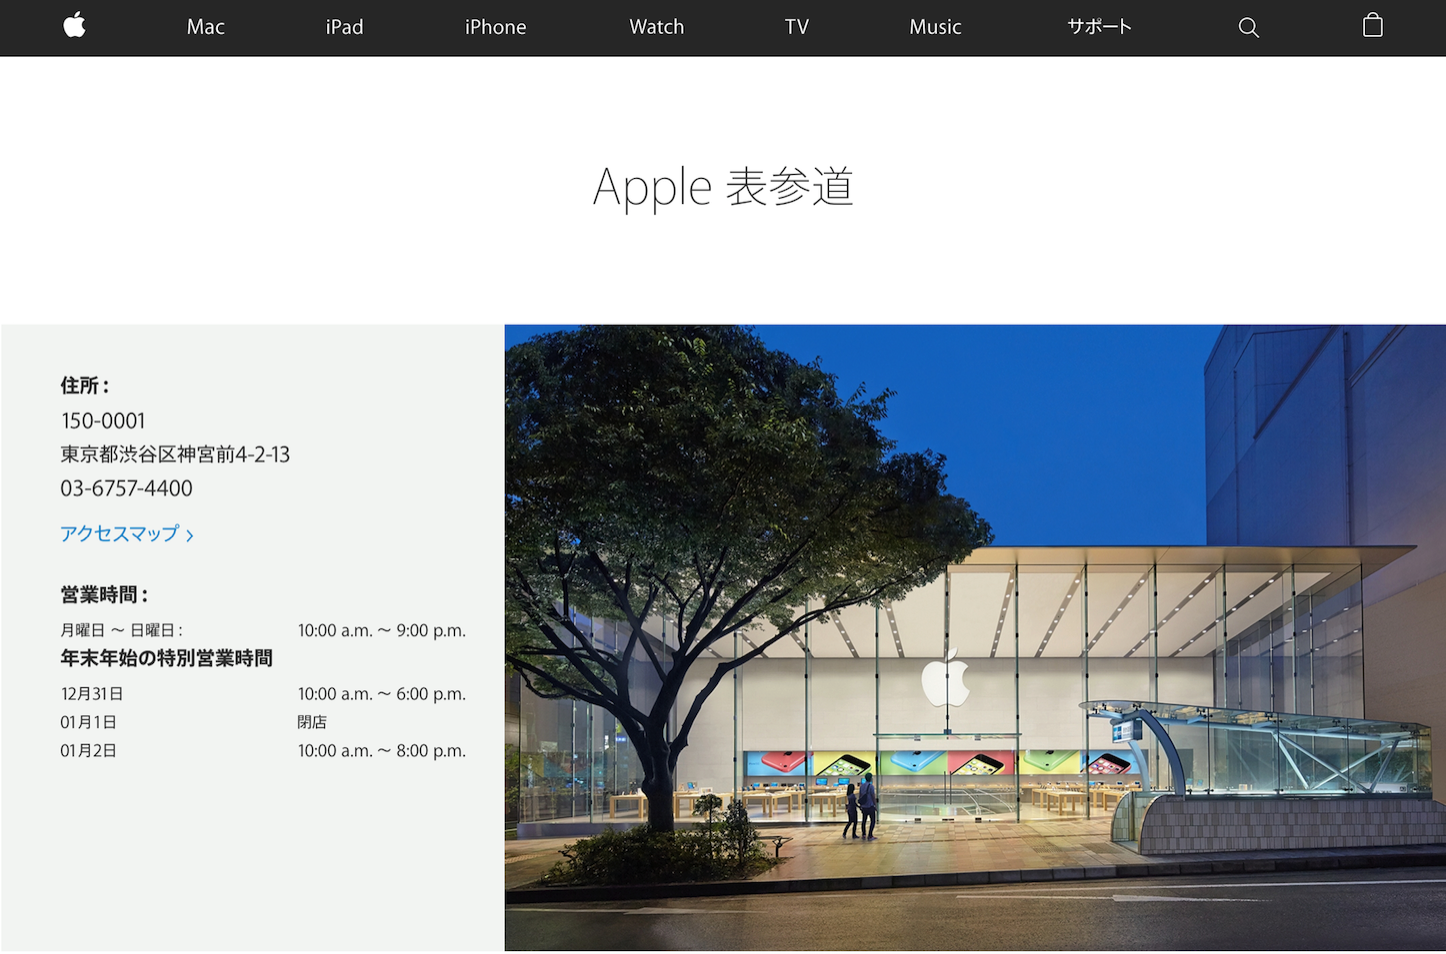 Apple Store Omotesando 2017 schedule